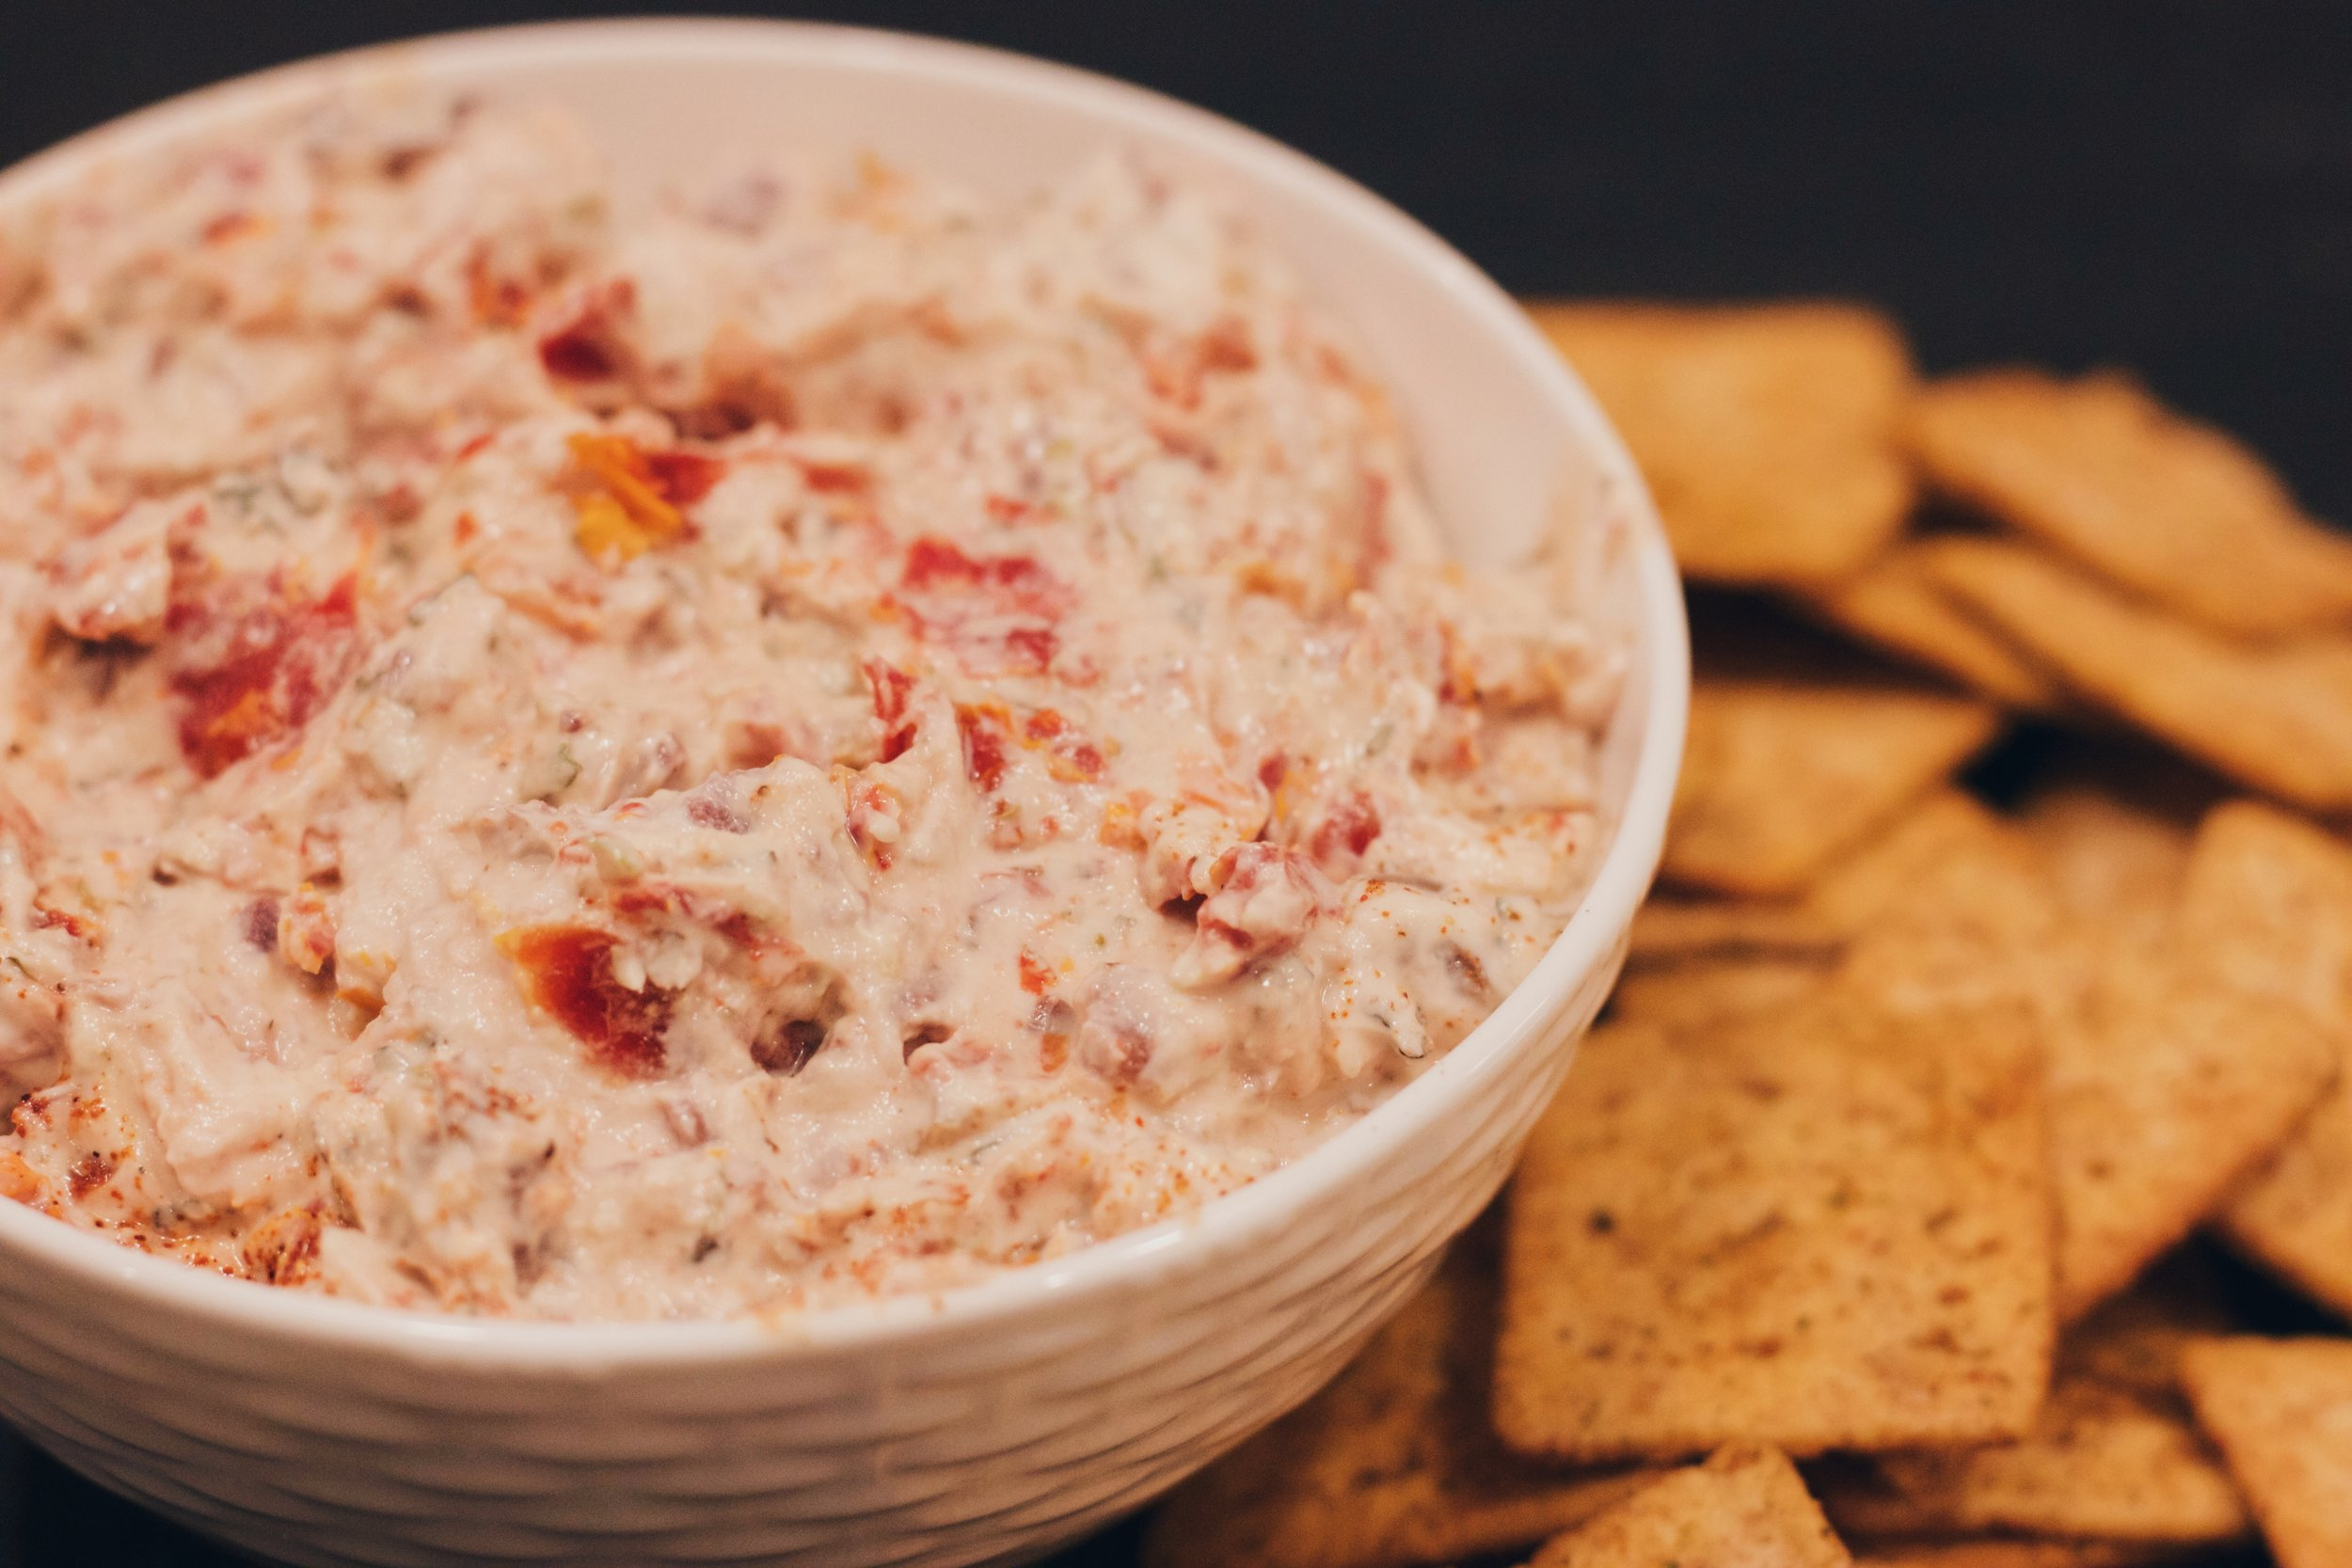 Mediterranean Olive and Sun Dried Tomato Dip